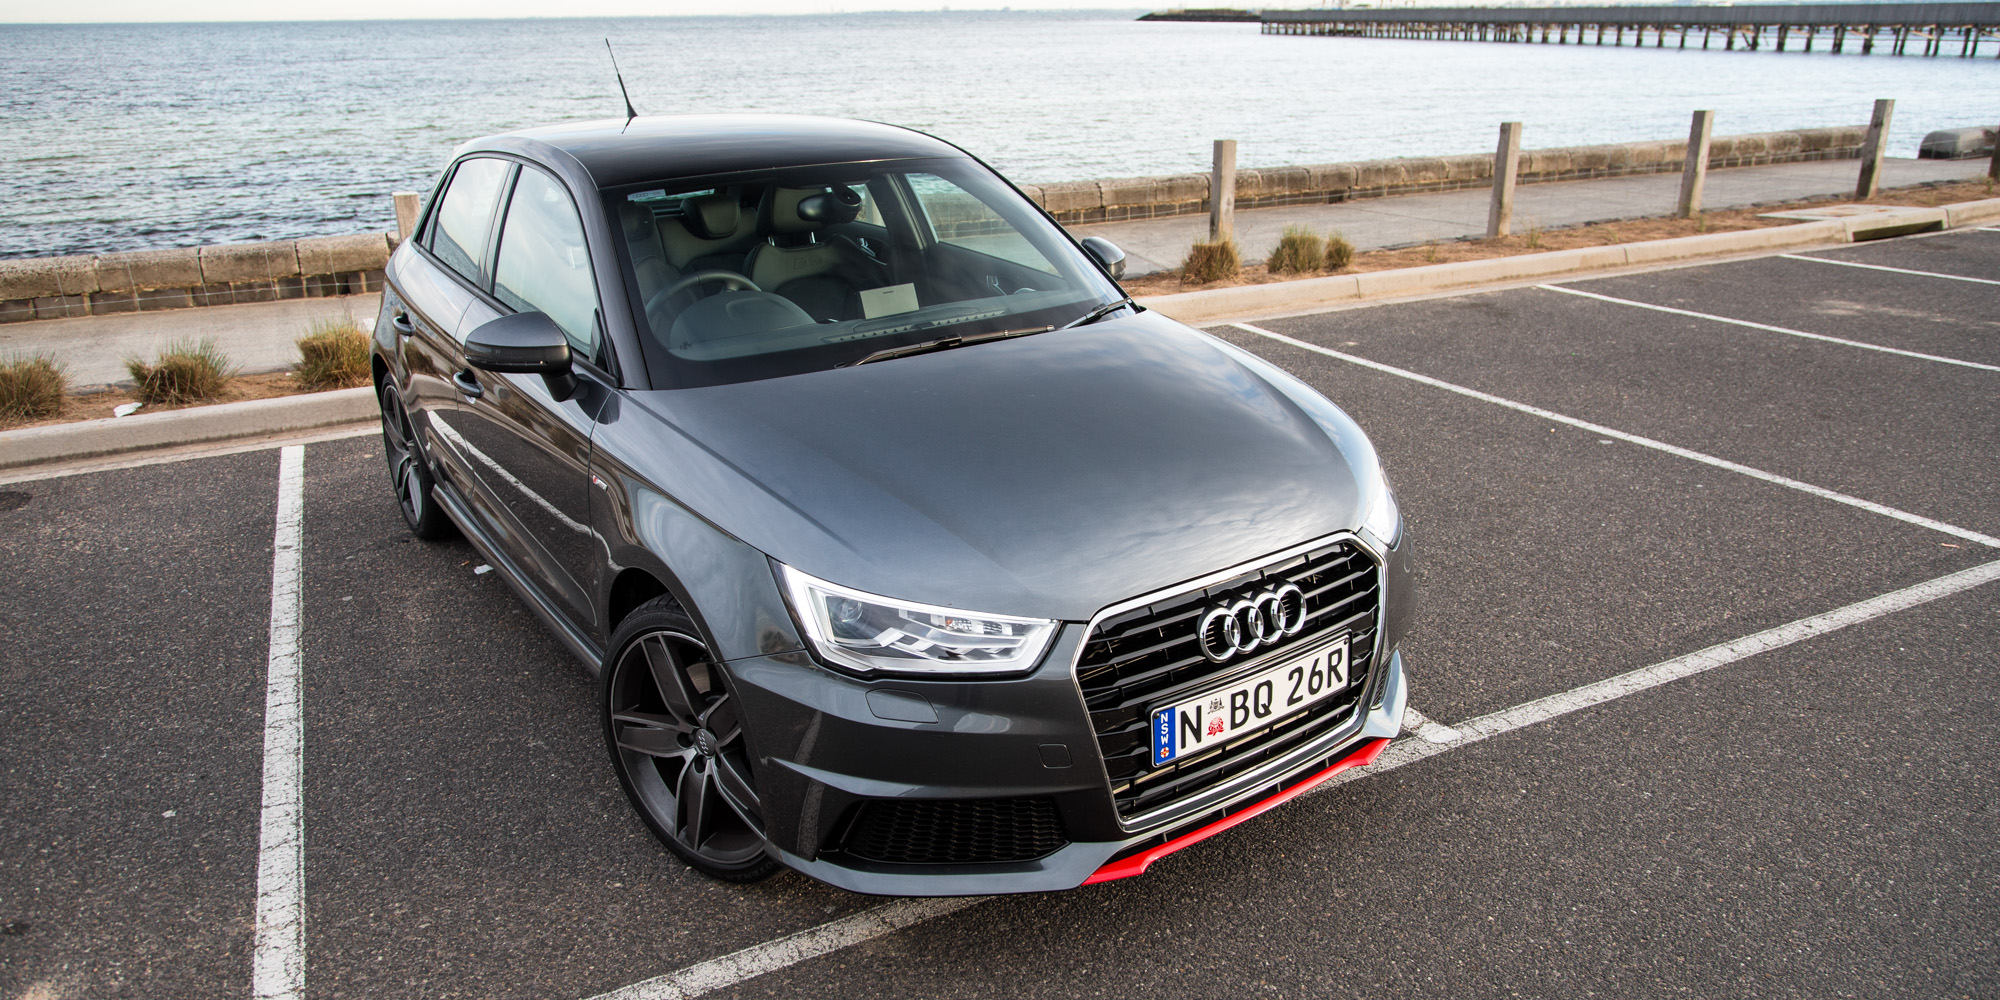 2015 audi a1 sportback review 18 tfsi s line photos